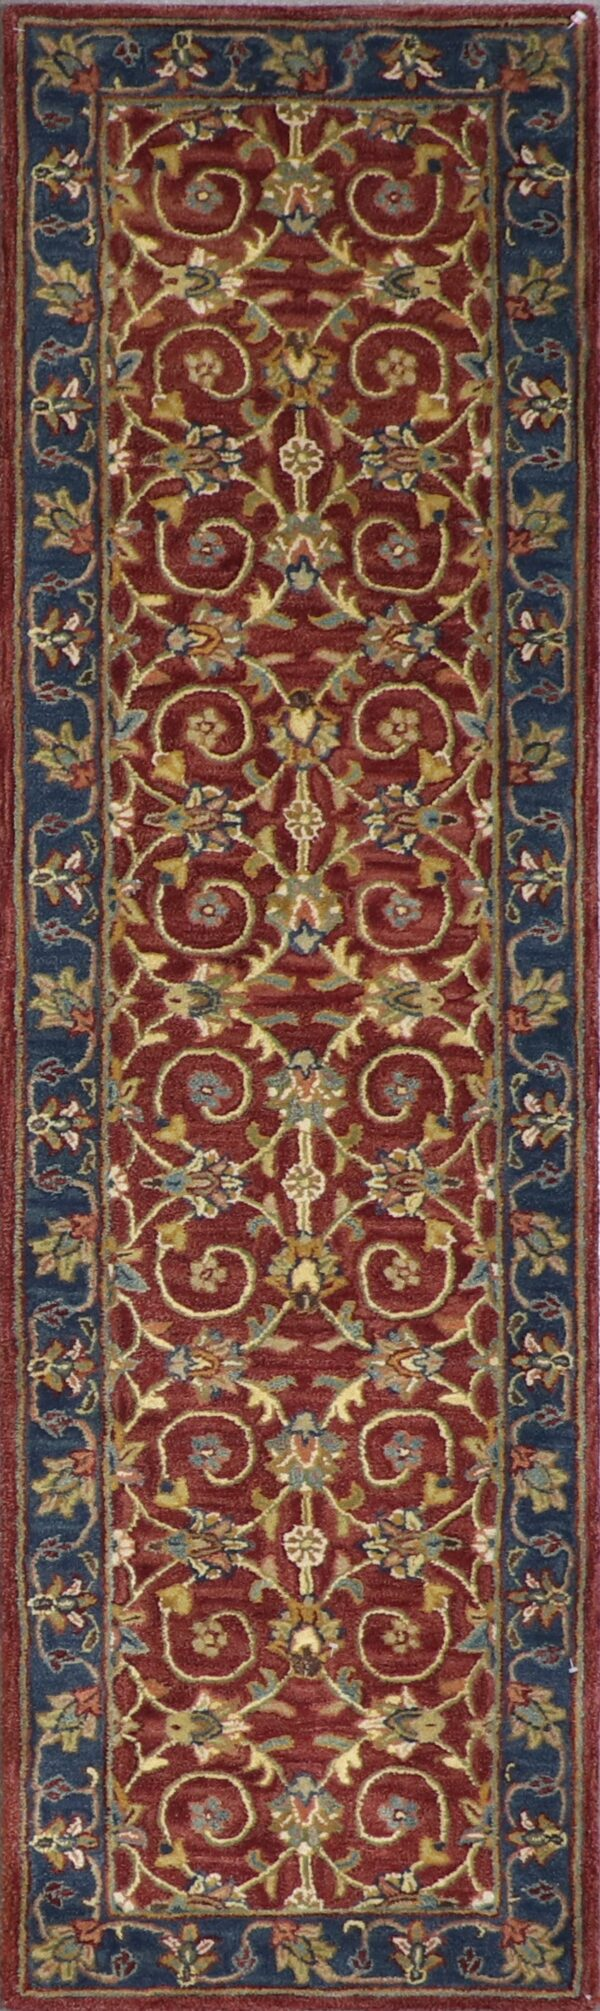 """2'3""""x7'11"""" Decorative Brugundy Wool Hand-Tufted Rug - Direct Rug Import 